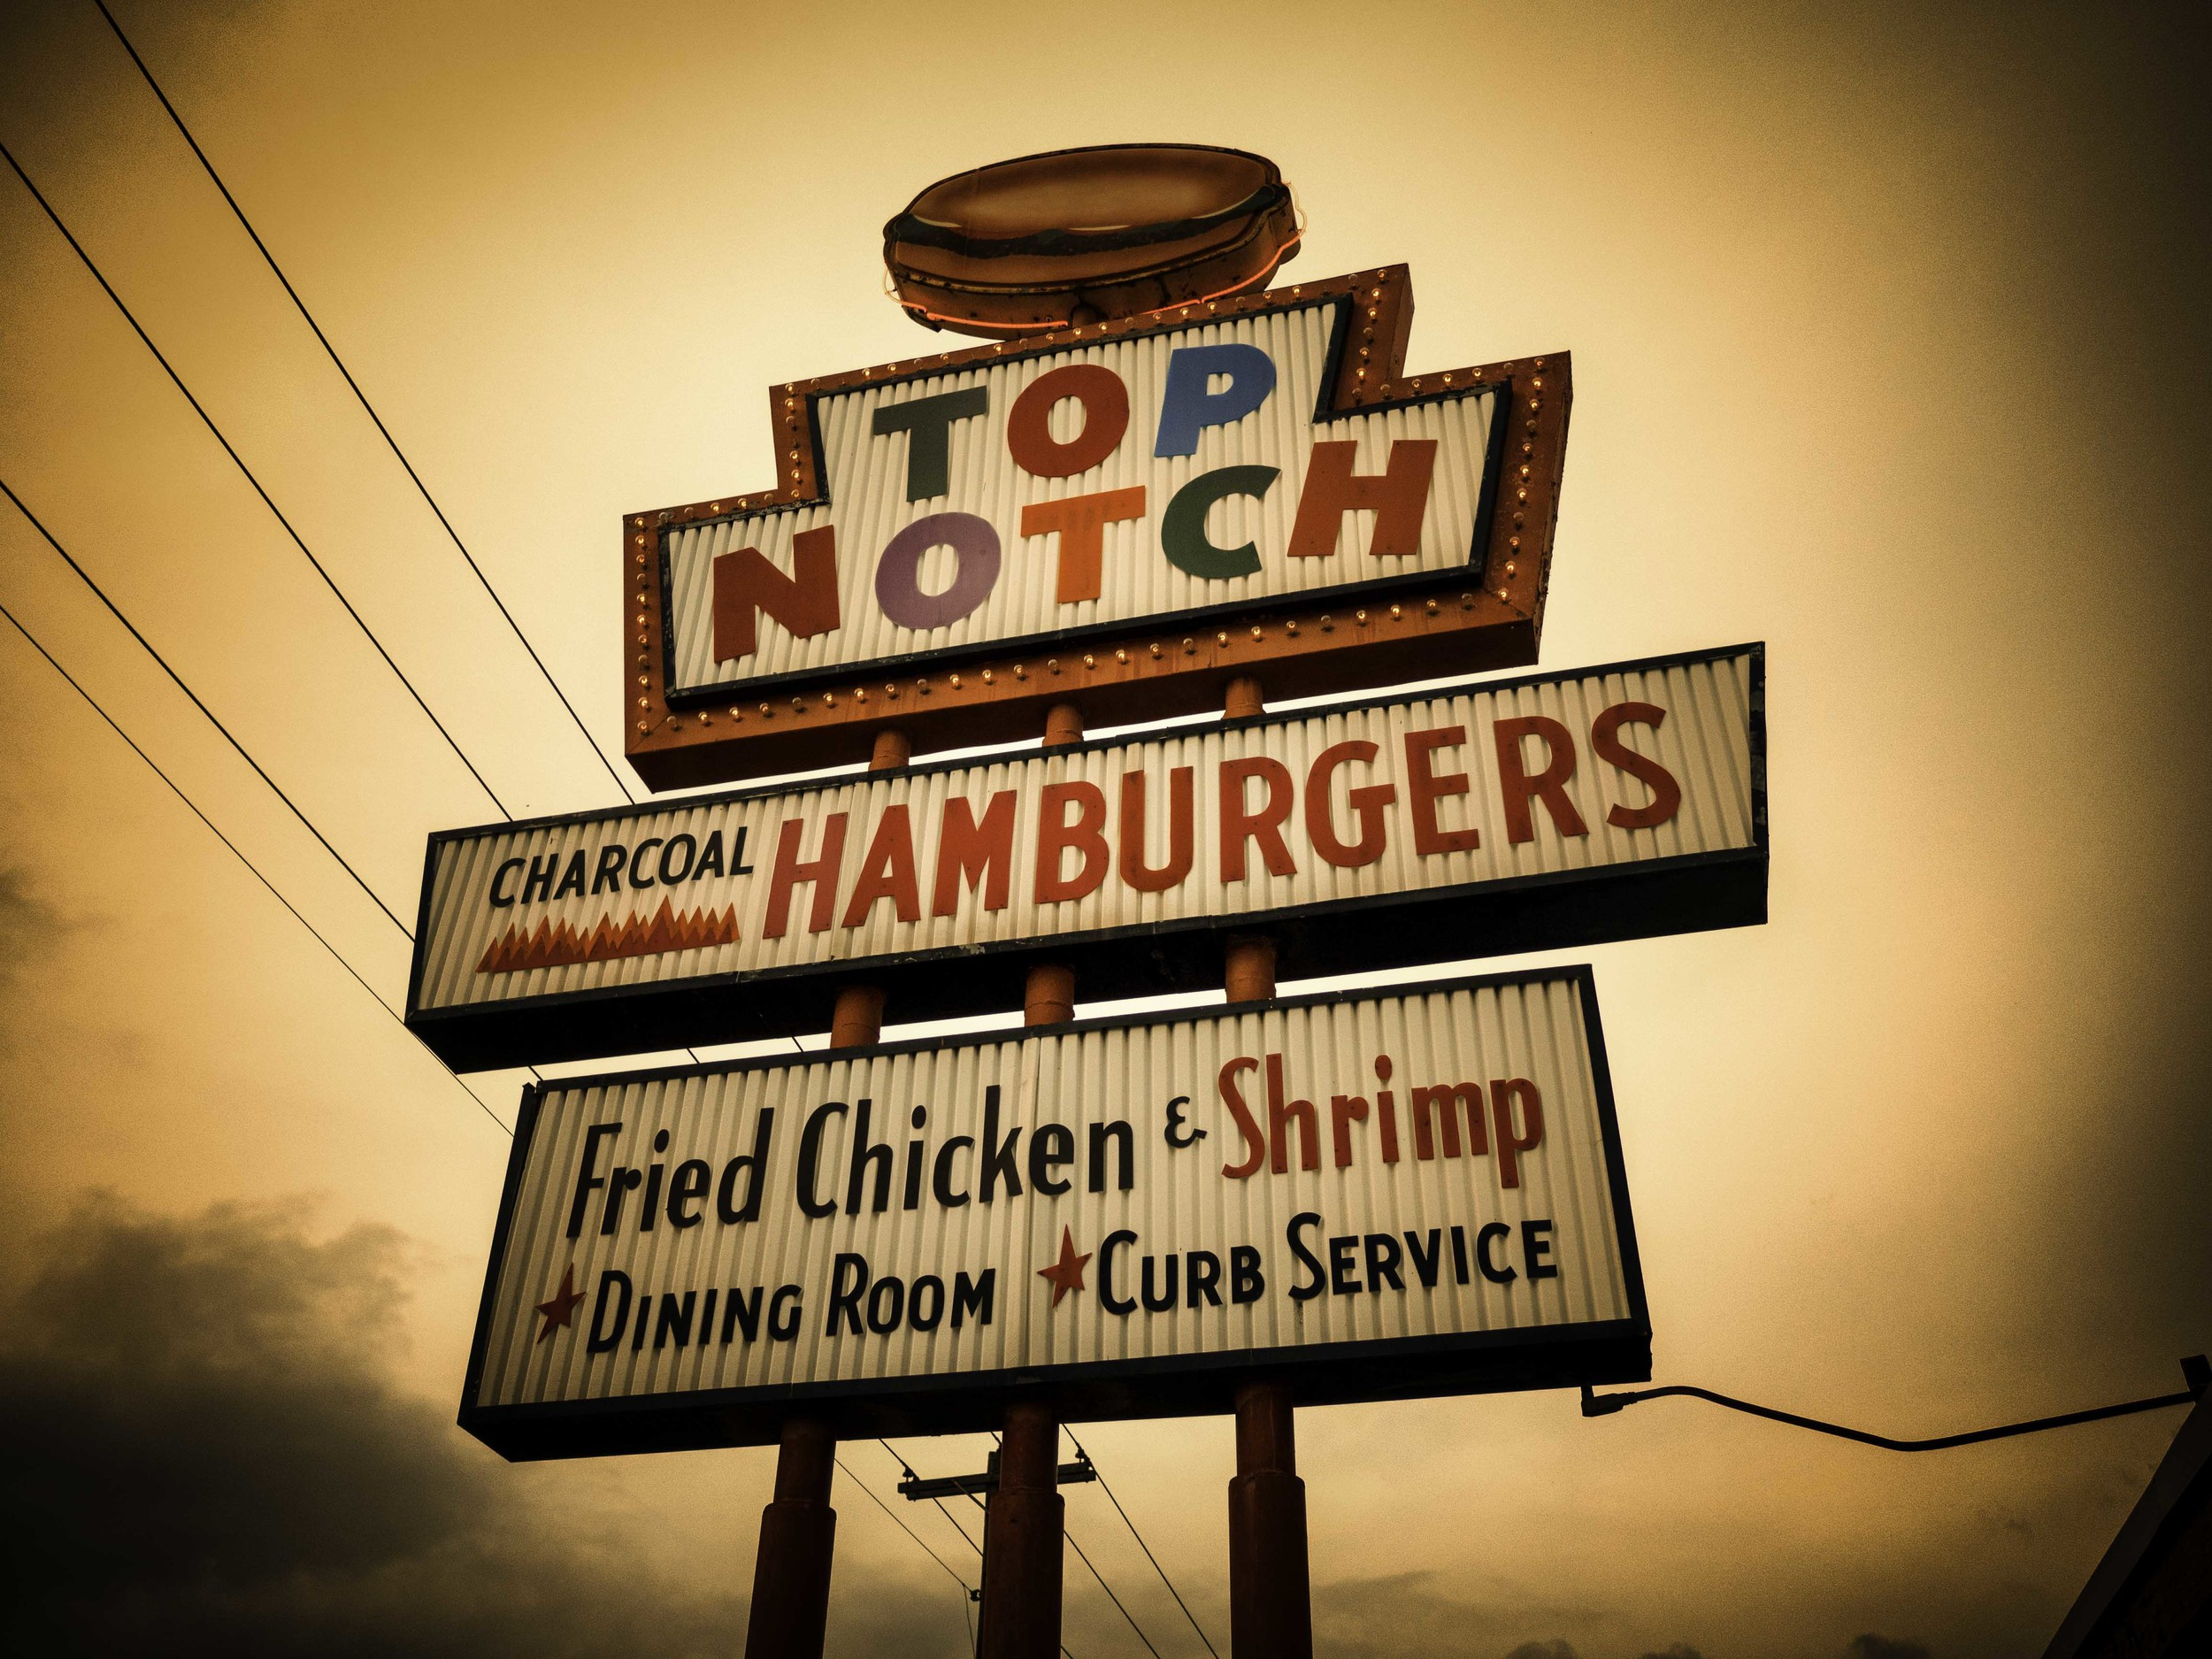 Top Notch Burgers is famous for being in the movie Dazed and Confused, which included local celebMatthew McConaughey. I have never seen him here.